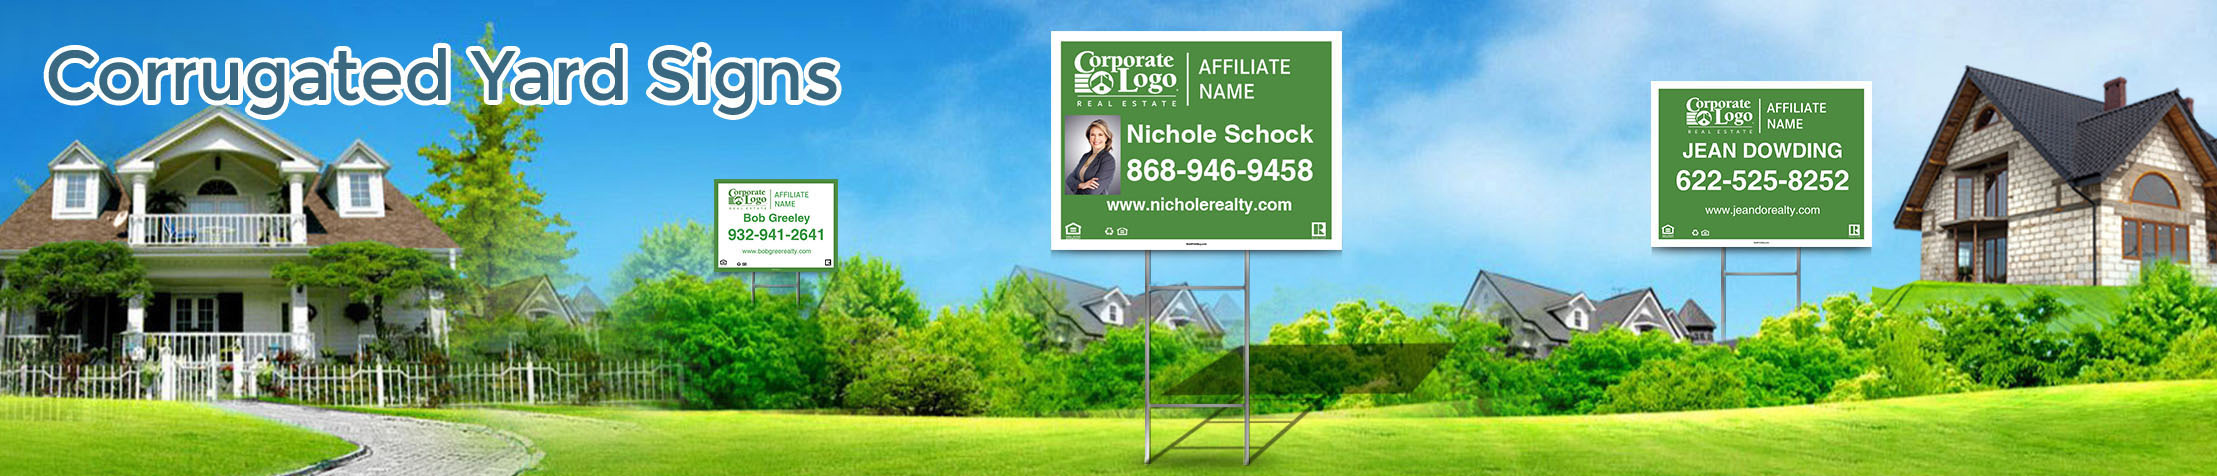 Better Homes and Gardens Real Estate Corrugated Yard Signs - Better Homes and Gardens real estate signs | BestPrintBuy.com